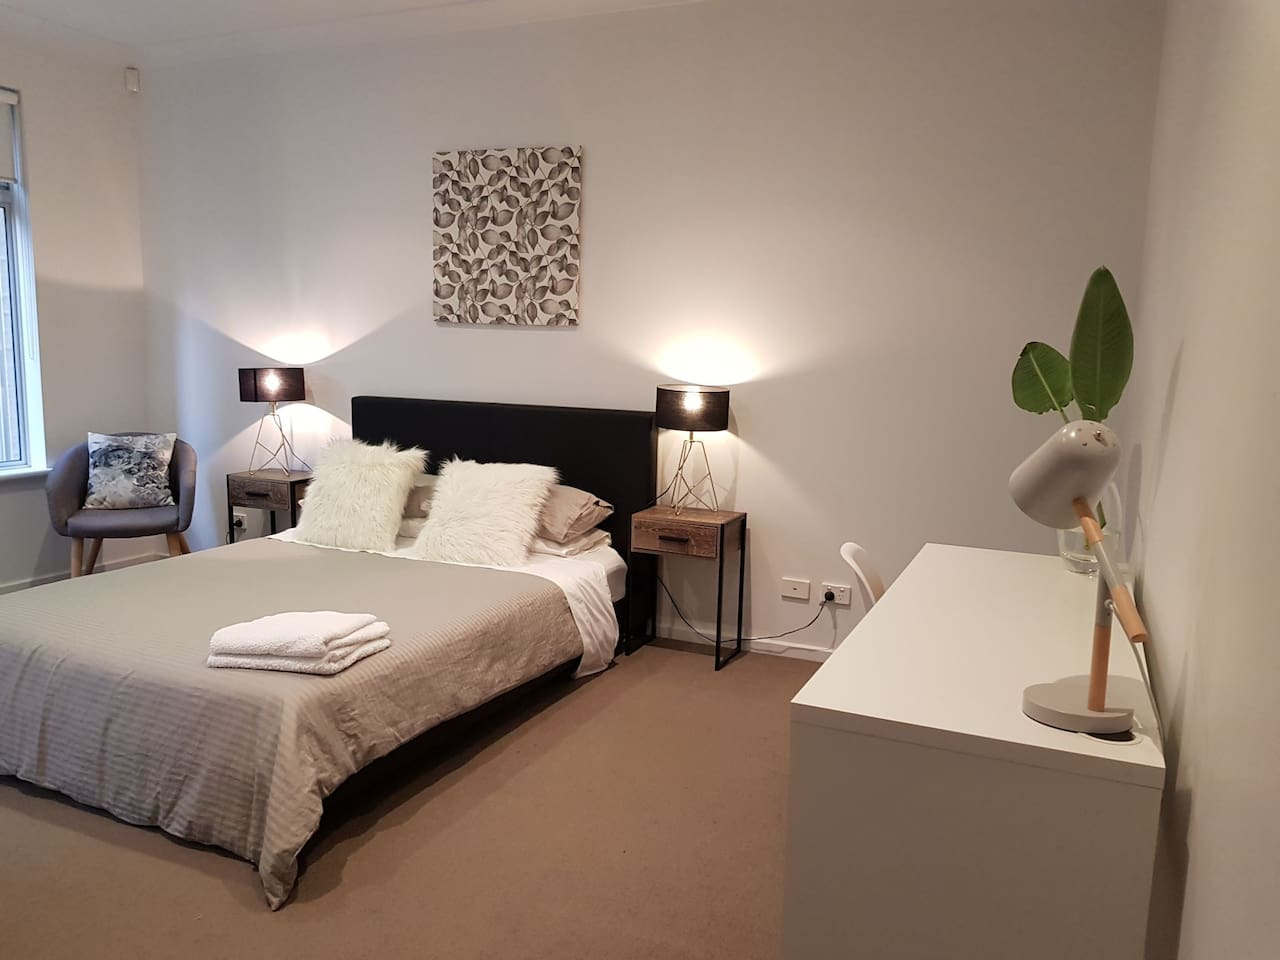 main bedroom 1 has a queen size bed and ensuite bathroom